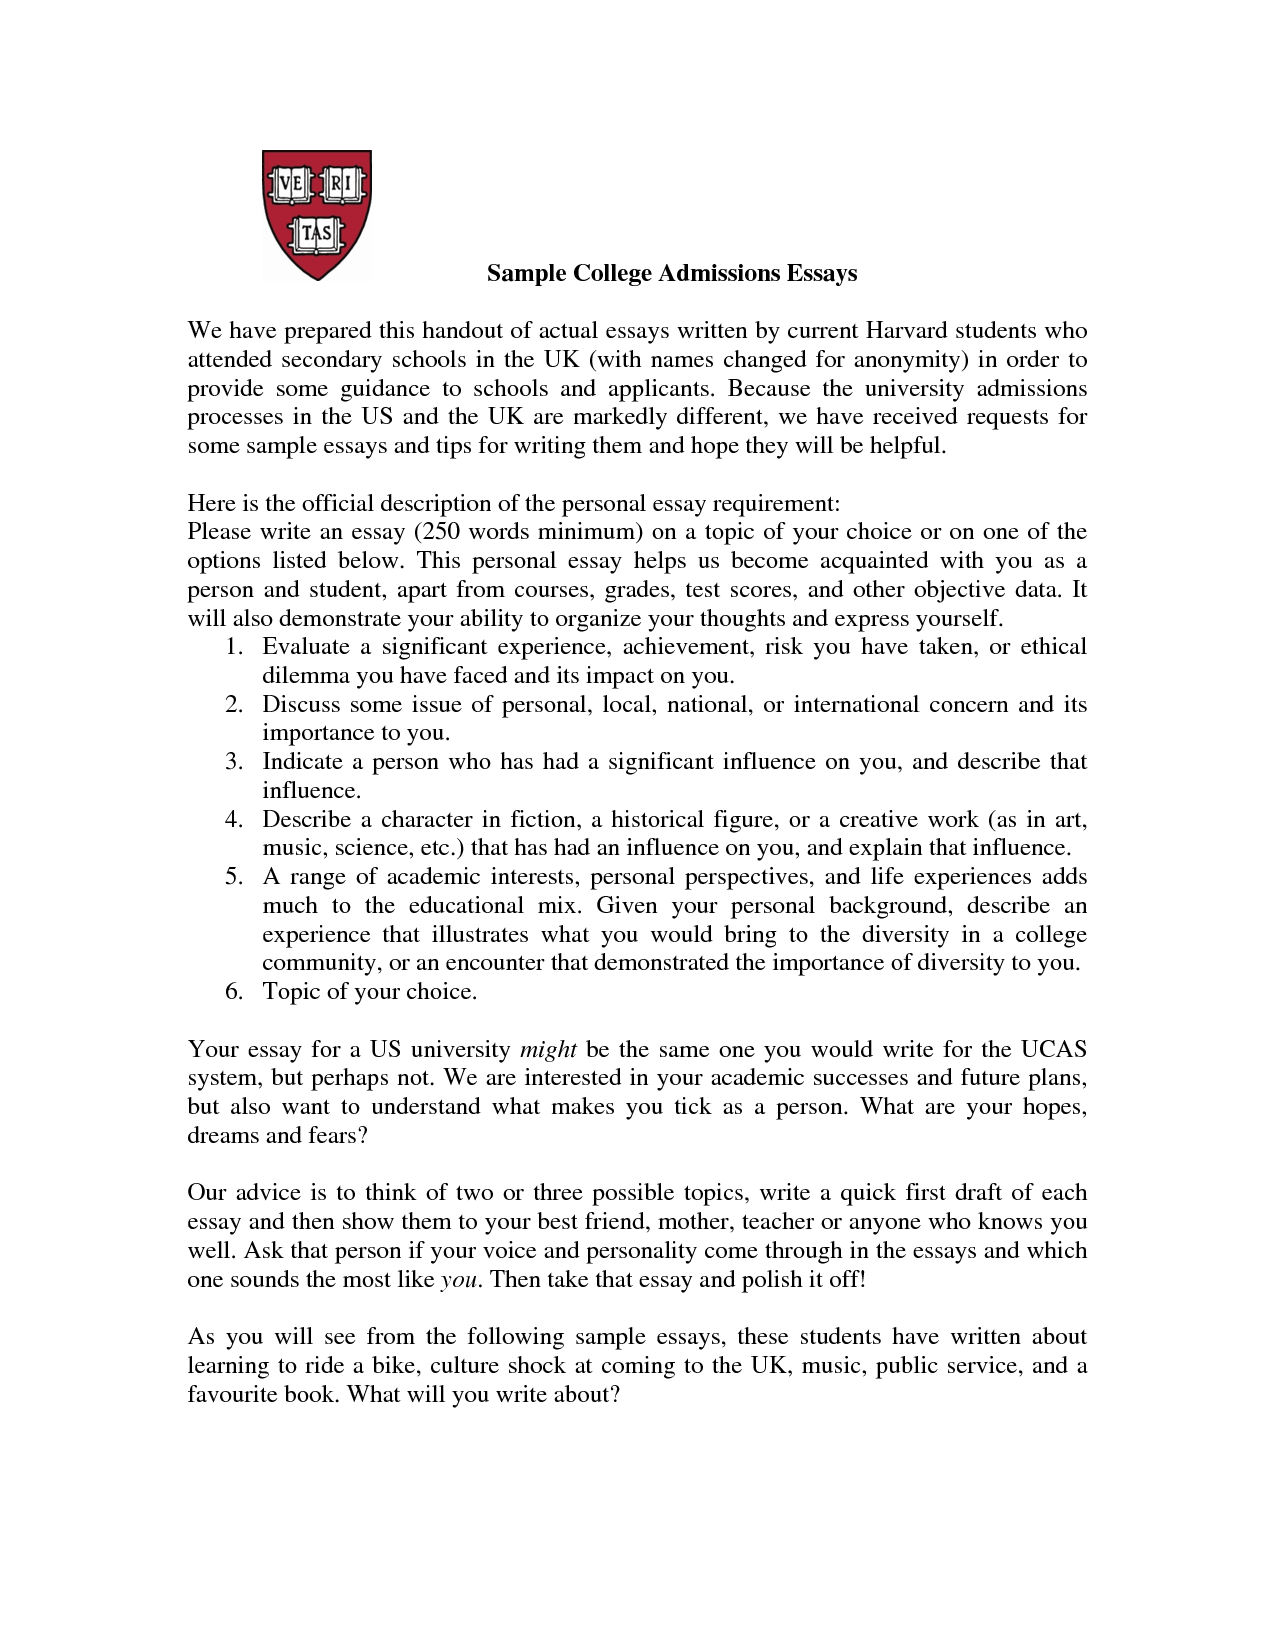 007 College Admission Essay 473129 Application Tips Beautiful Writing Common App Confidential Full